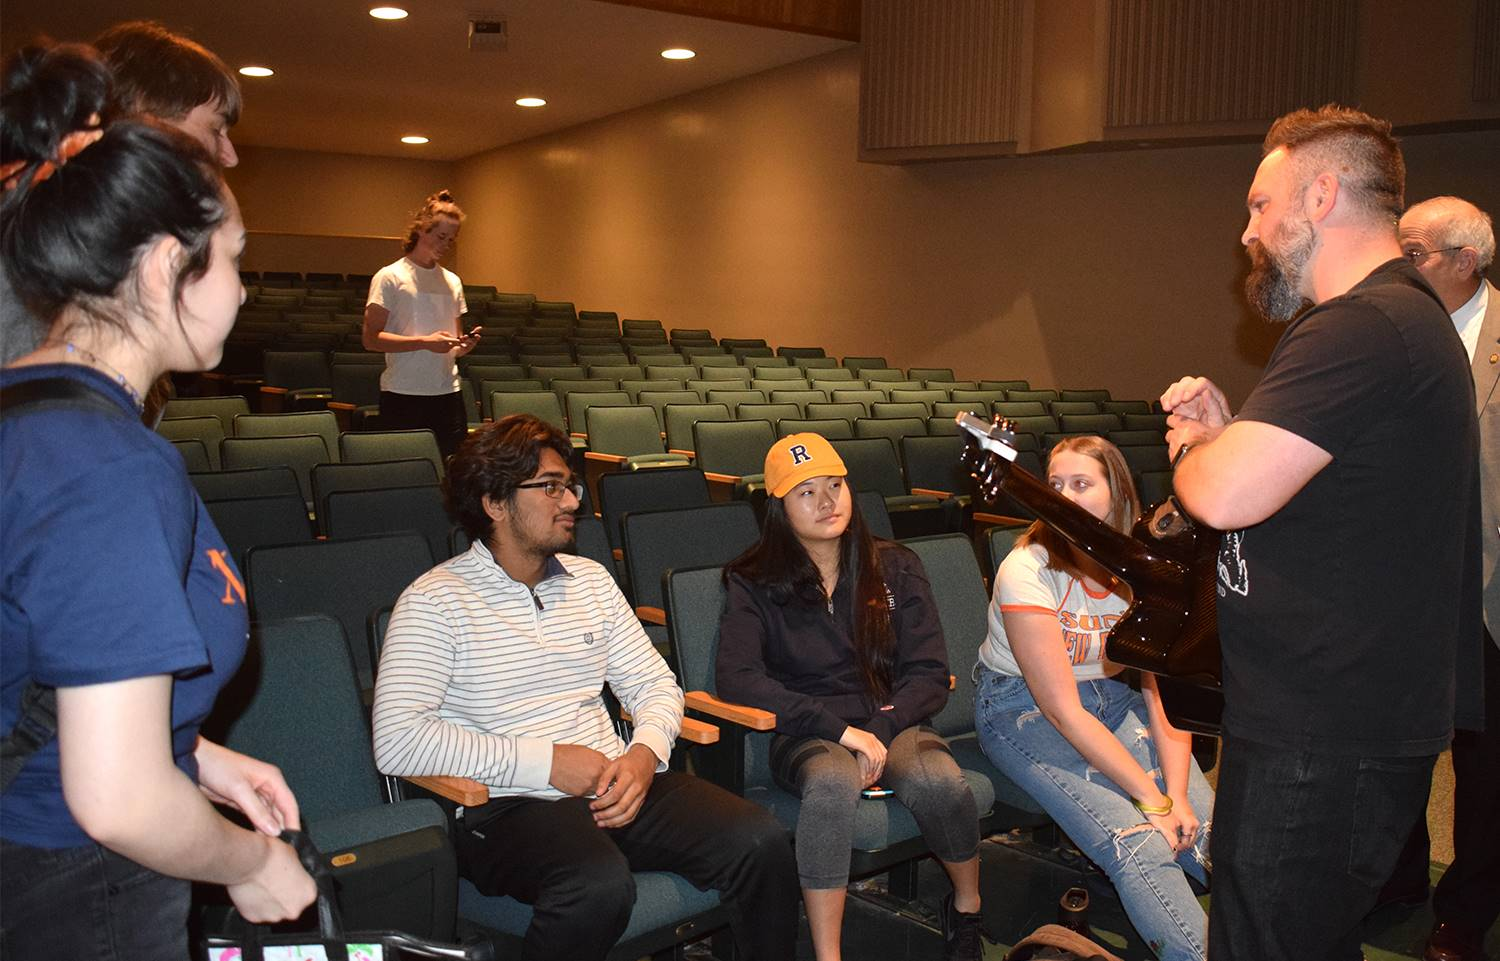 Jared Campbell talks with students after his presentation in the Vestal High School auditorium on Ma